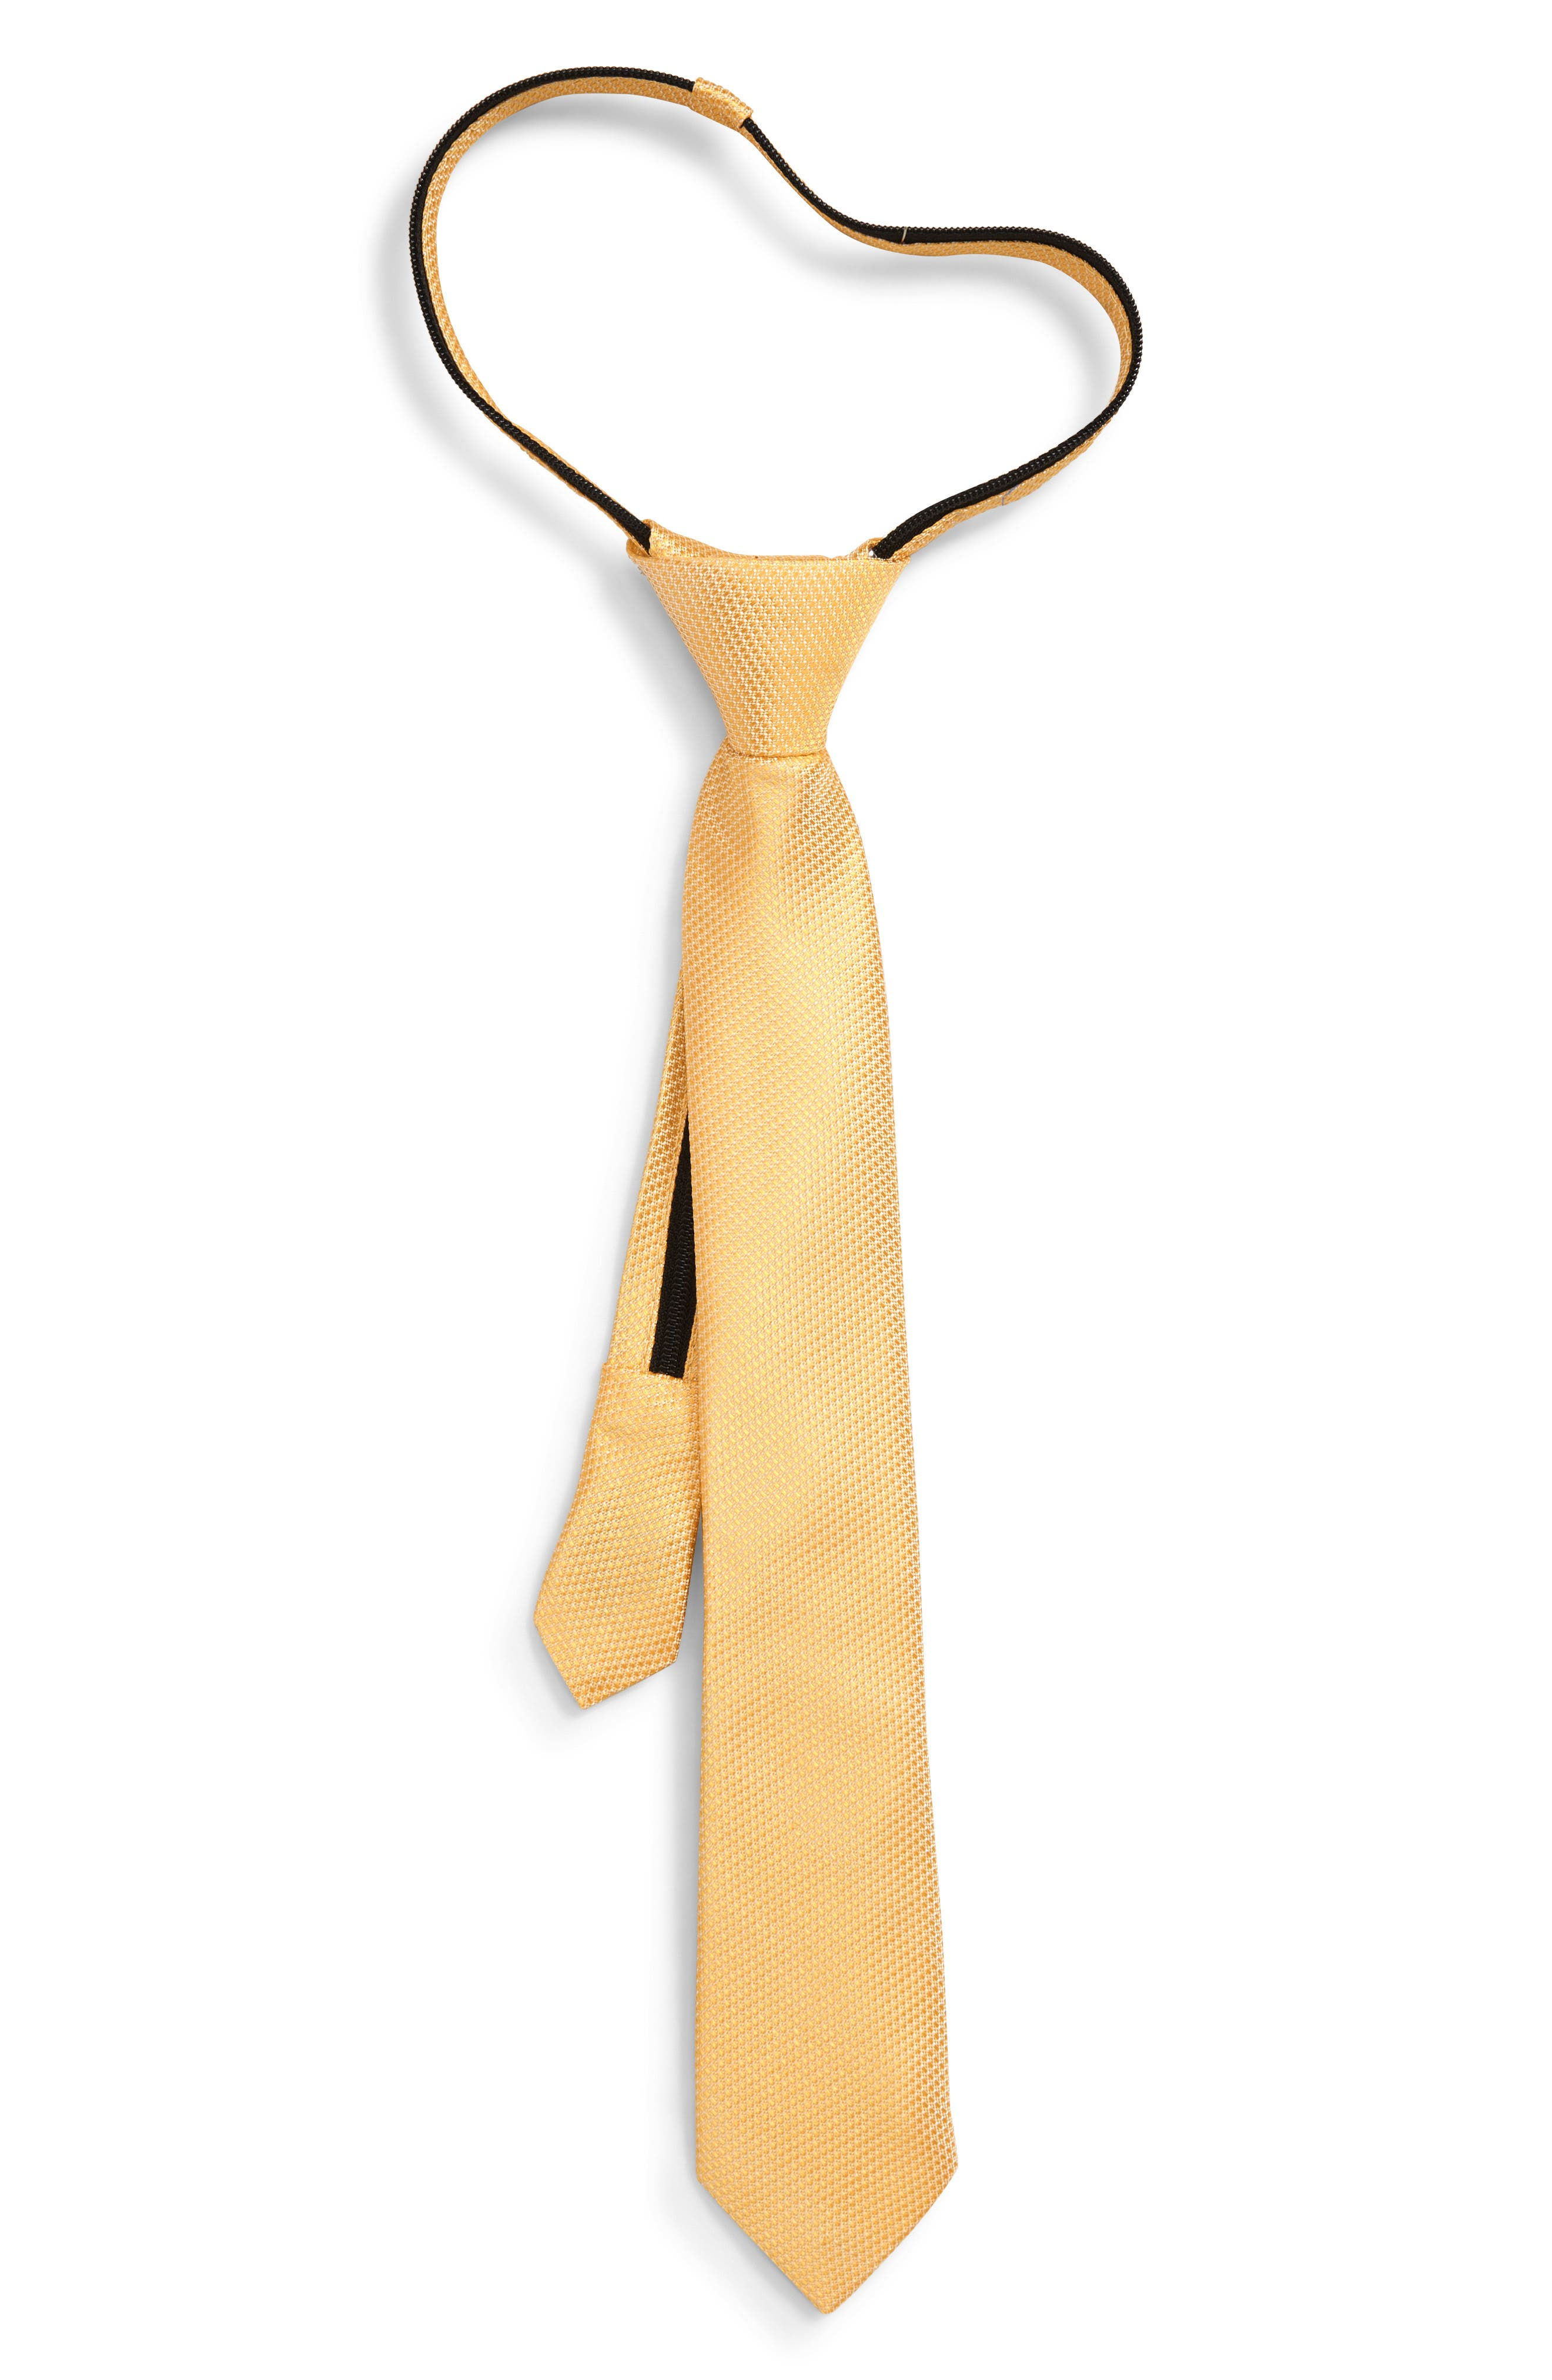 NORDSTROM, Andrew Solid Zip Silk Tie, Main thumbnail 1, color, YELLOW